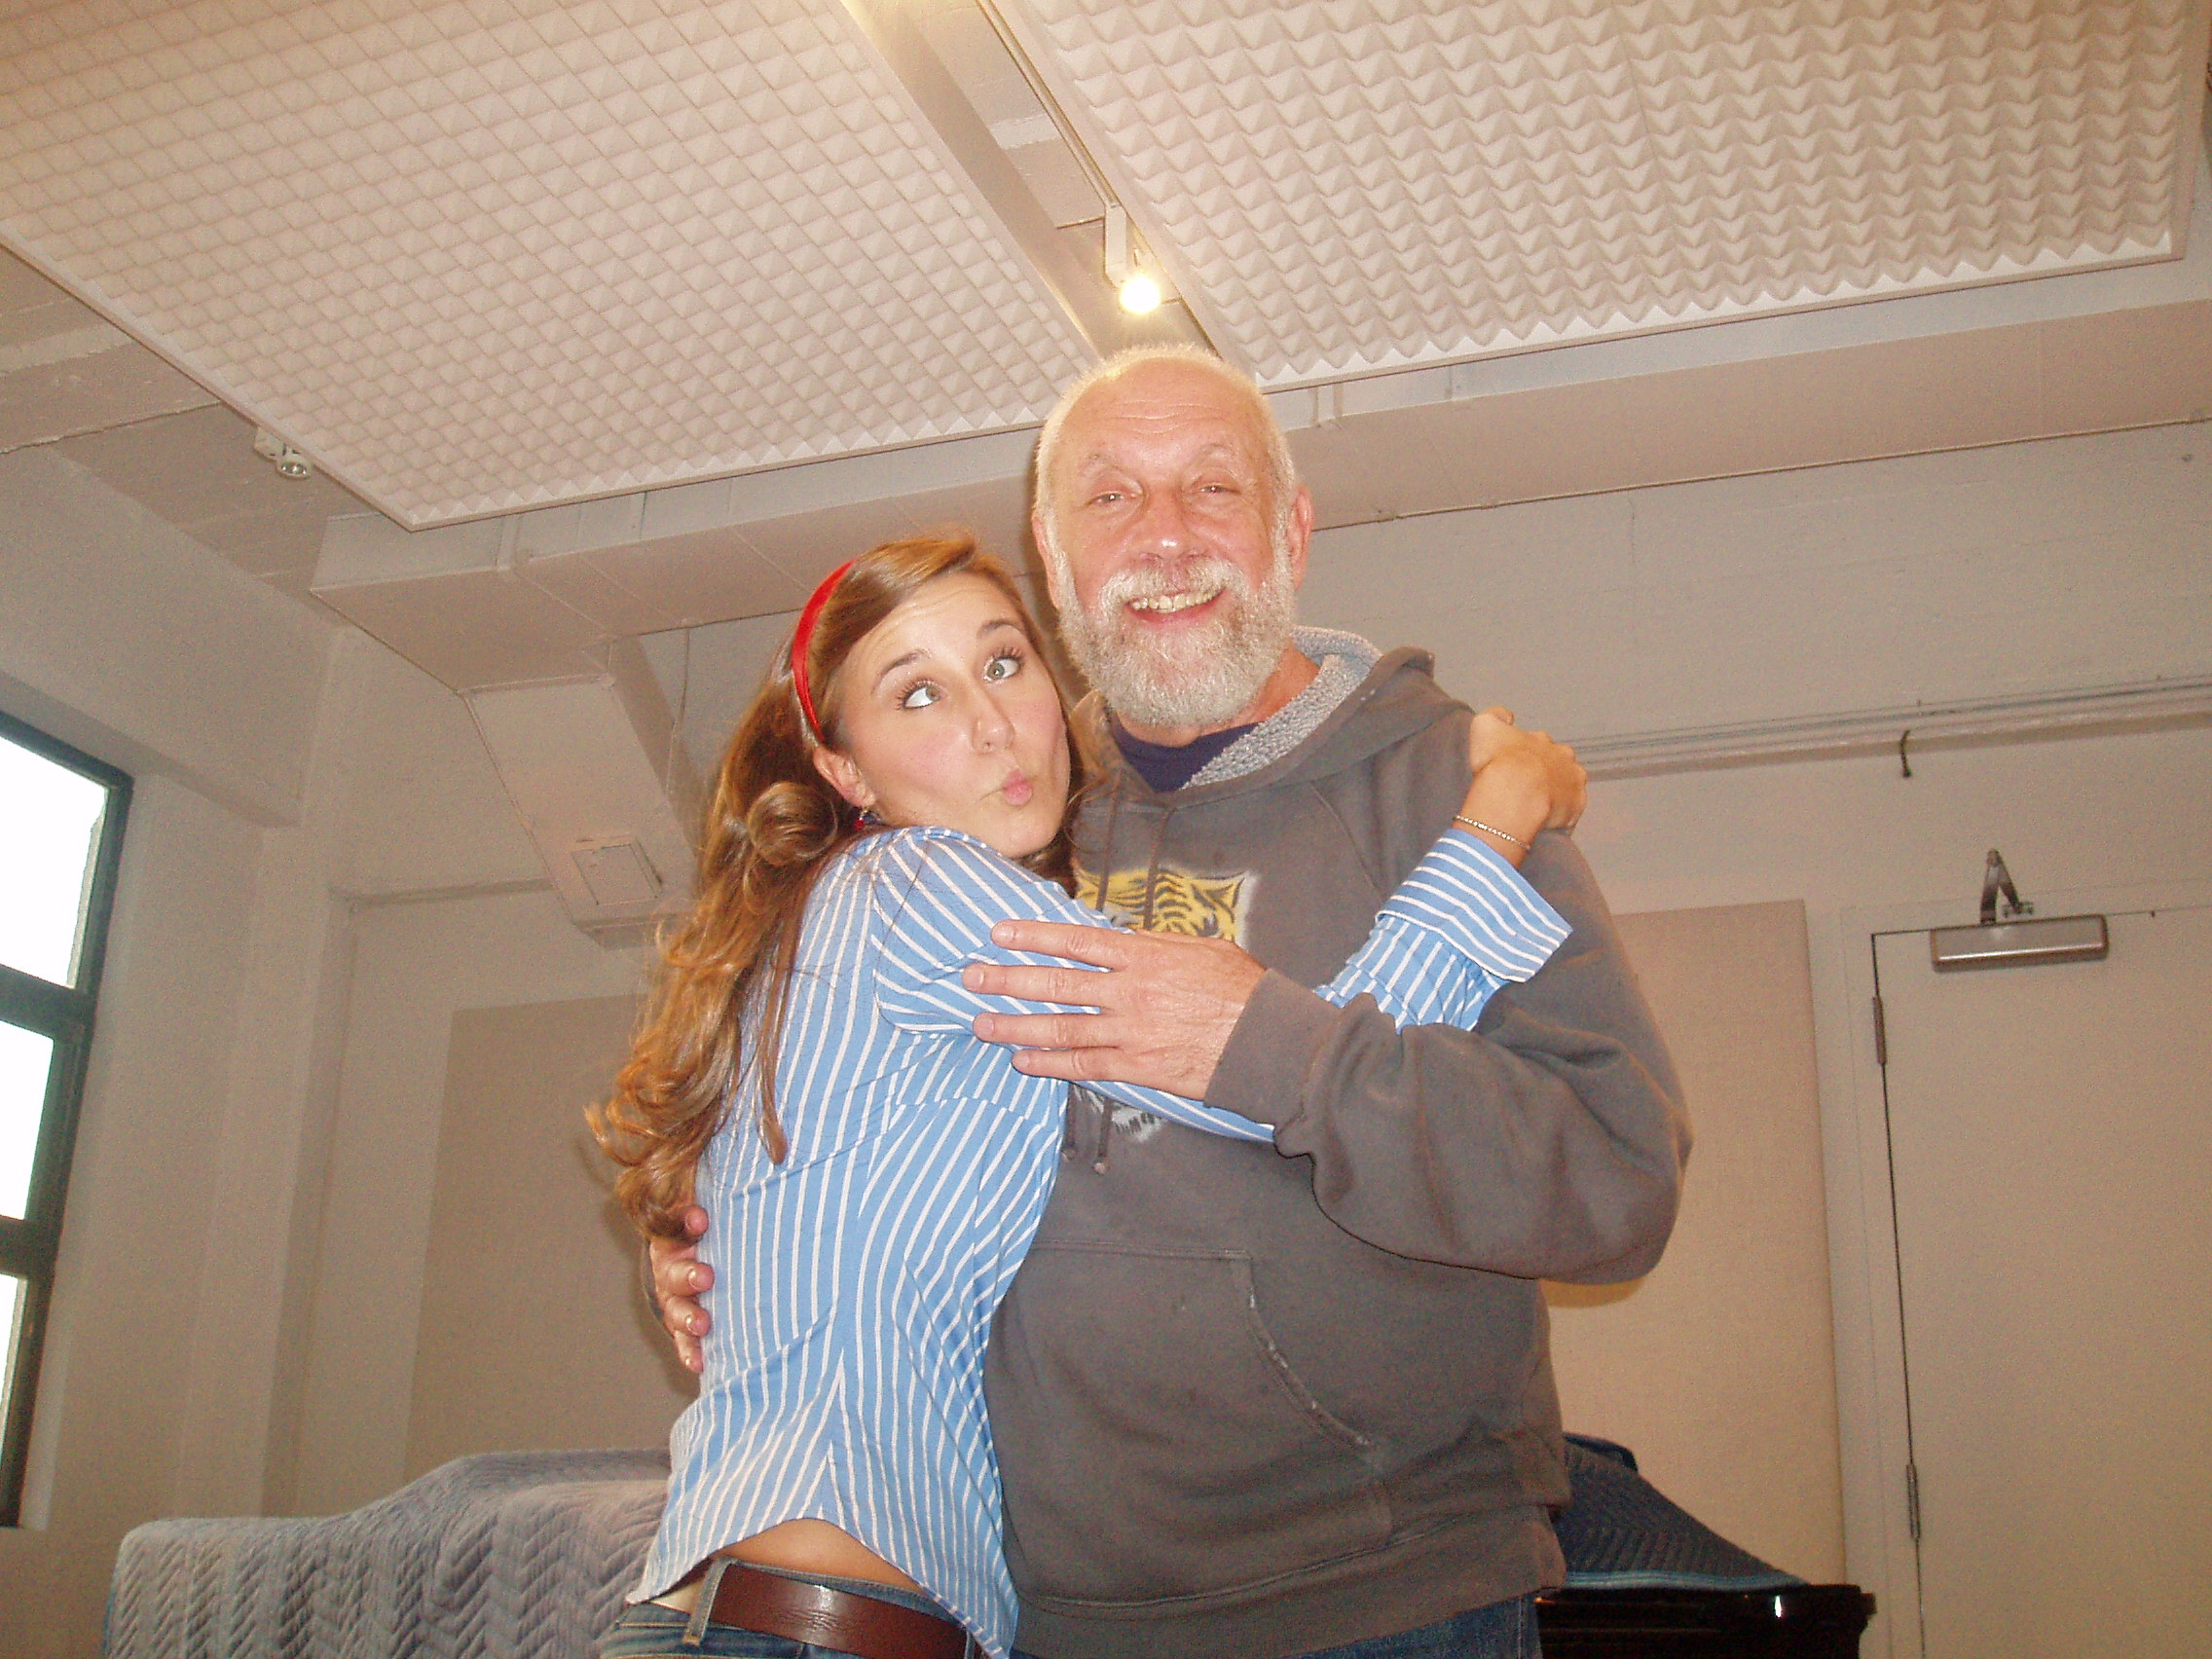 Being silly after a recording session with Grammy award winning producer, Joel Dorn.